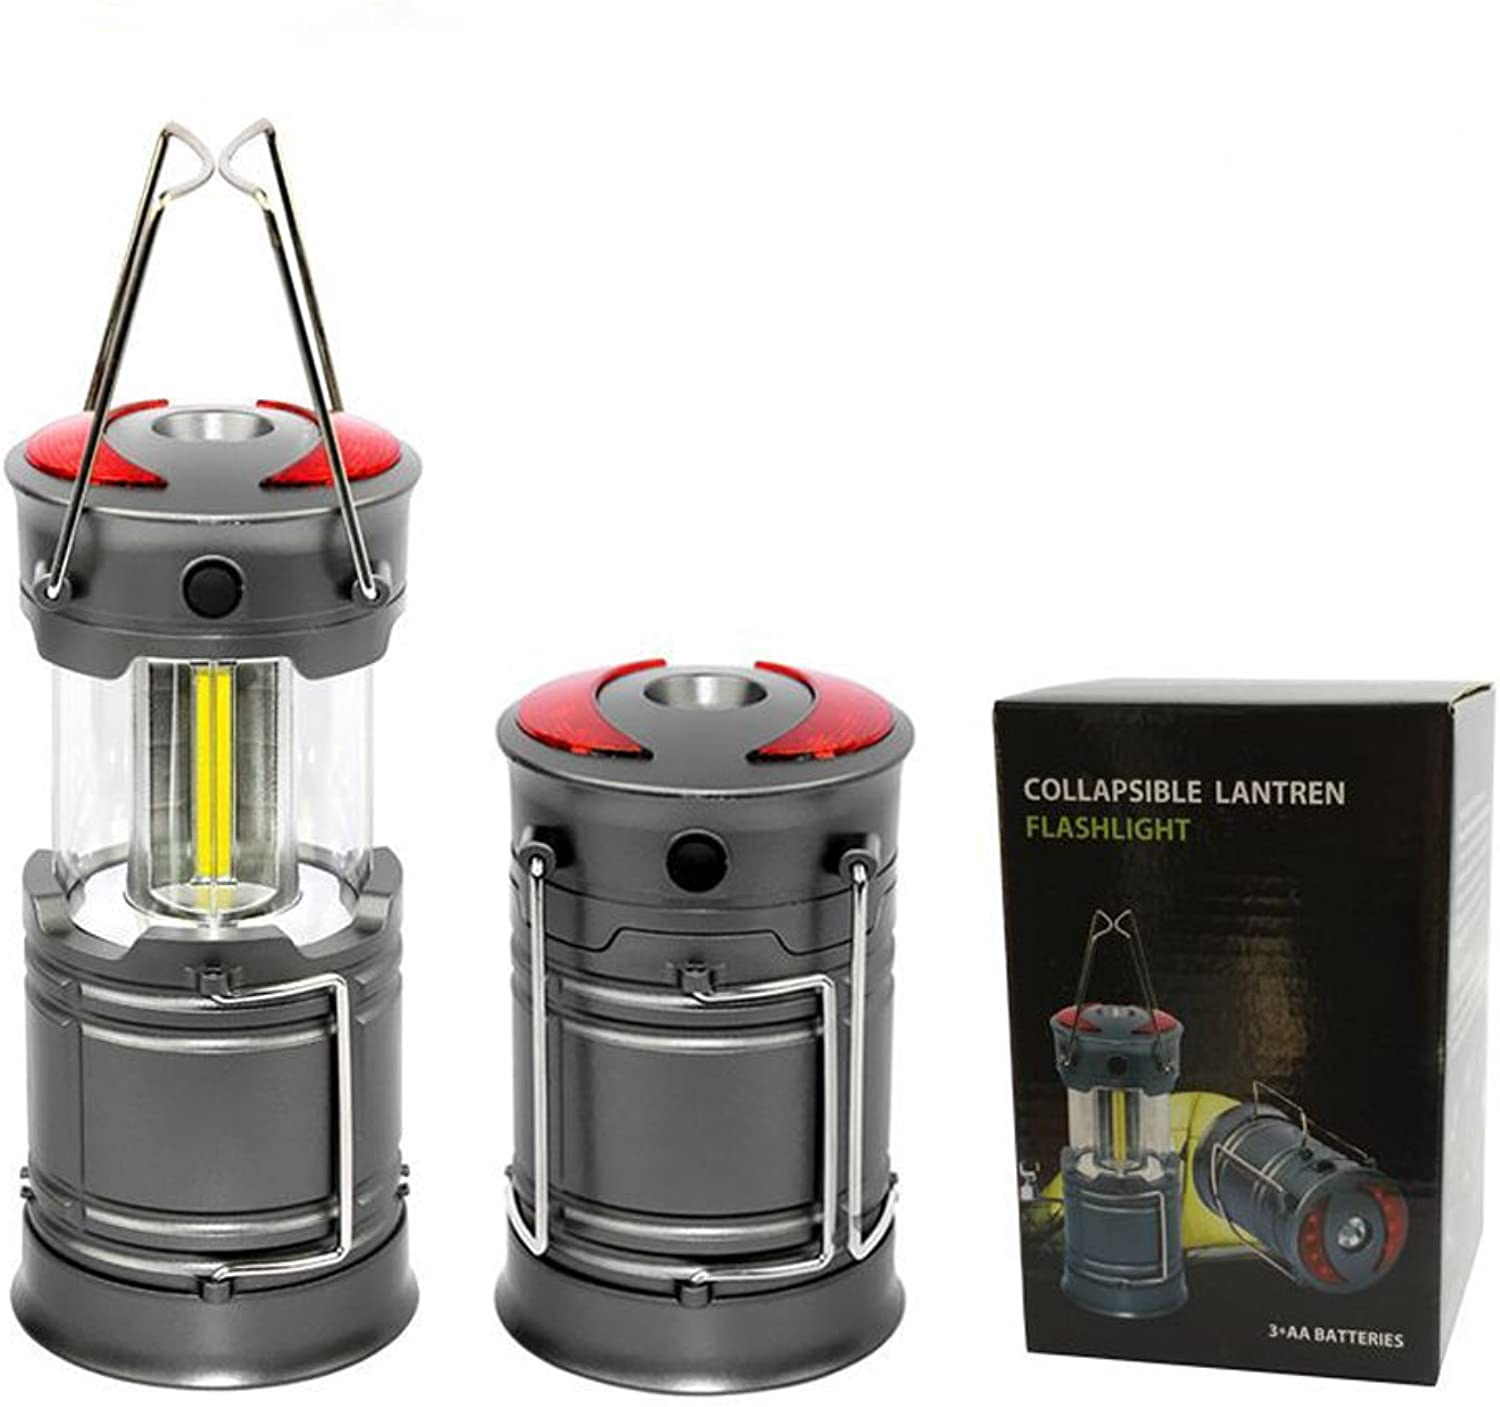 BaiYouDa LED Camping Lantern Flashlights for Backpacking & Camping Equipment Lights  Best Gift Ideas